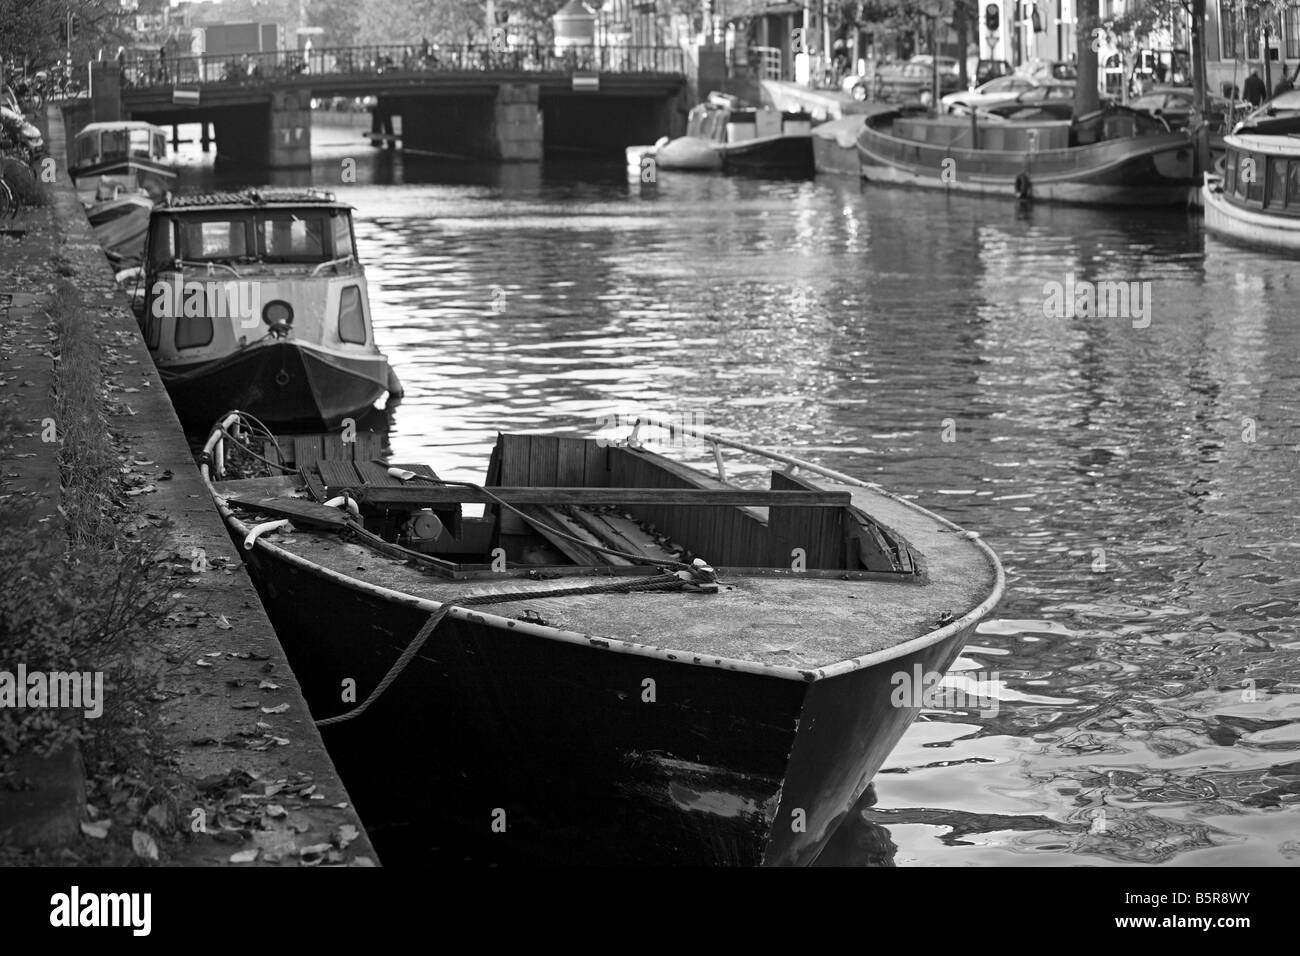 Boats and barges lined up on the canal on Prinsengracht,Amsterdam - Stock Image